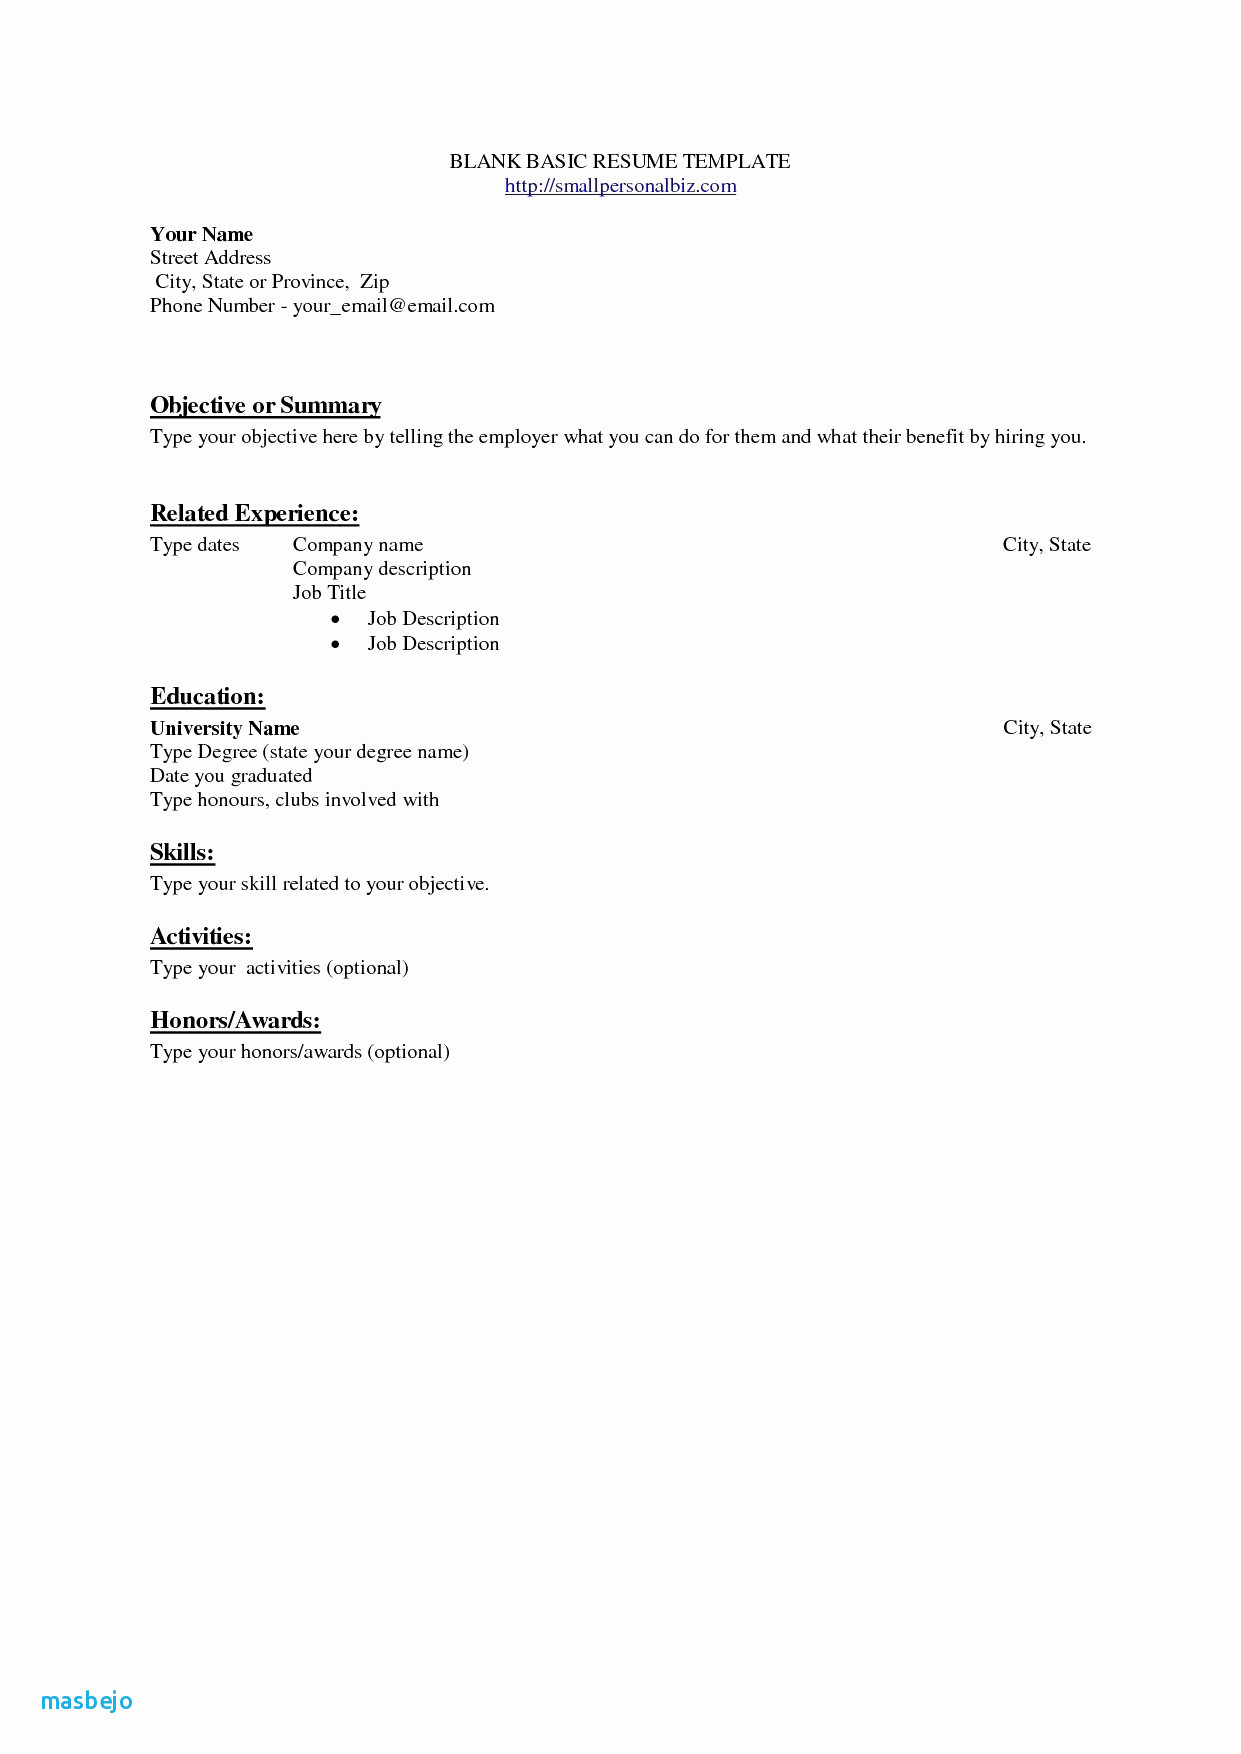 Linkedin Resume Search - Linkedin Resume Unique Experienced Rn Resume Fresh Nurse Resume 0d